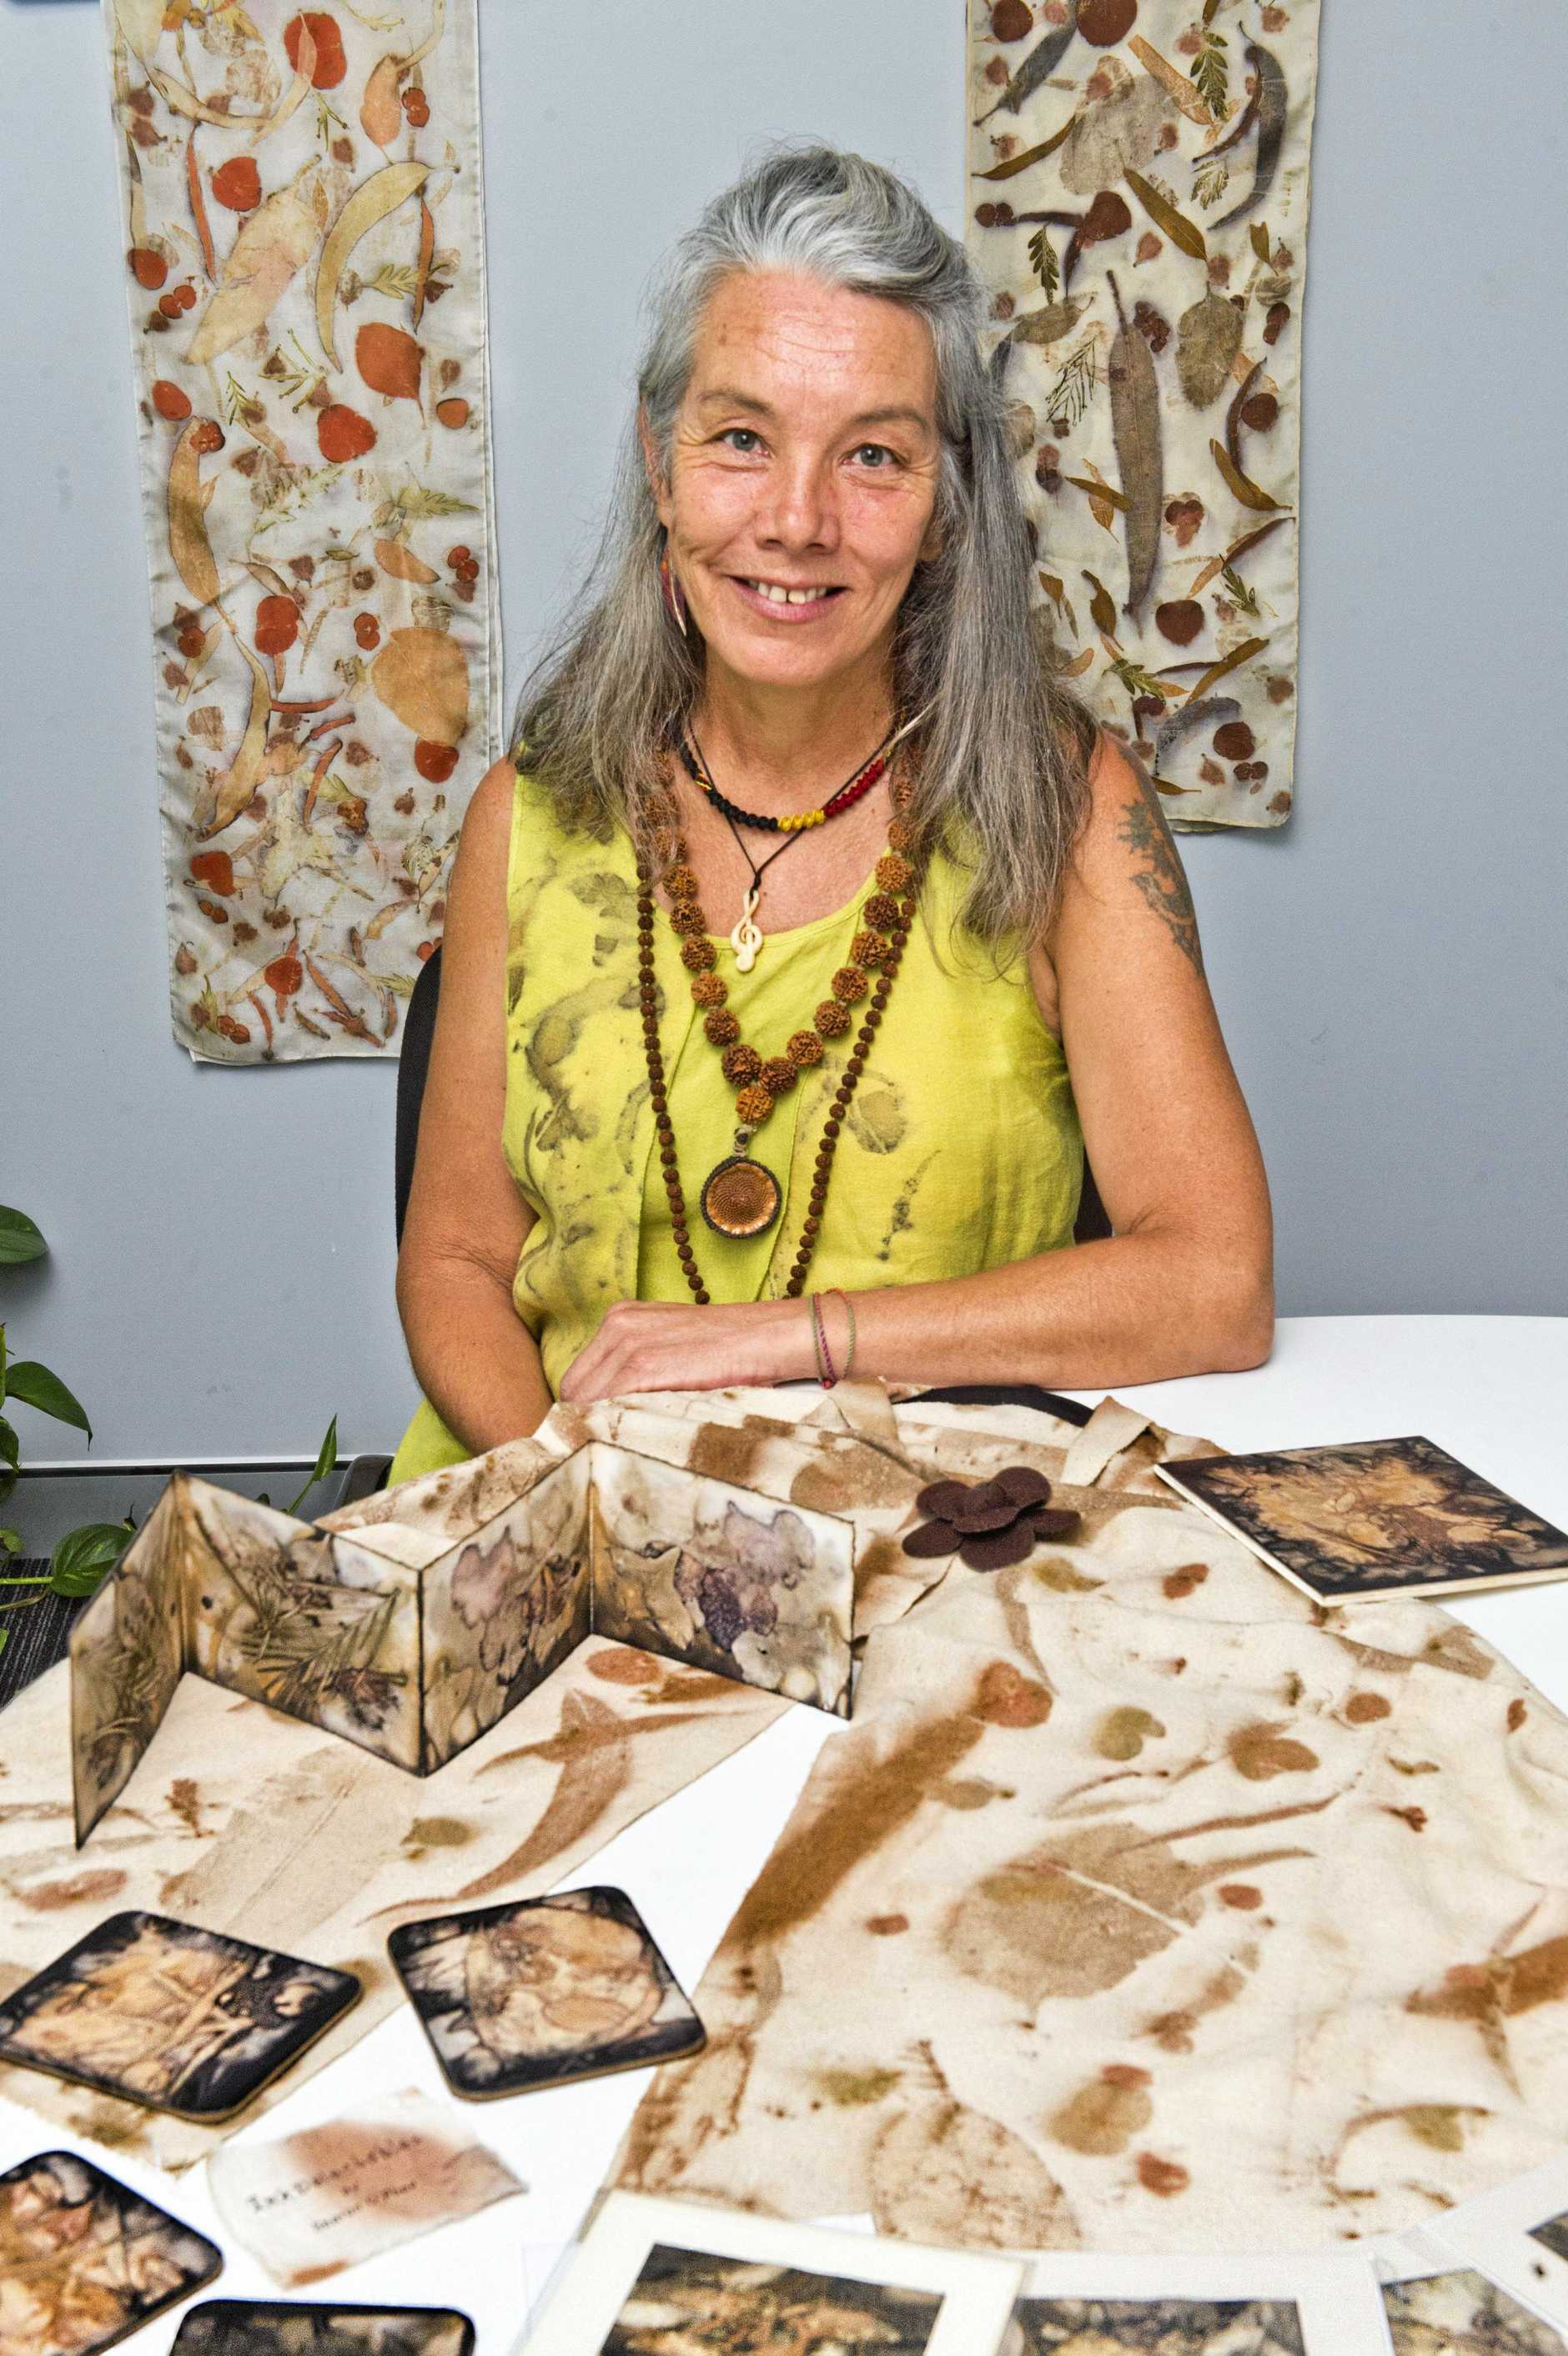 ART BY NATURE: Sharon O'Phee from InkDelectables with some of her natural creations.